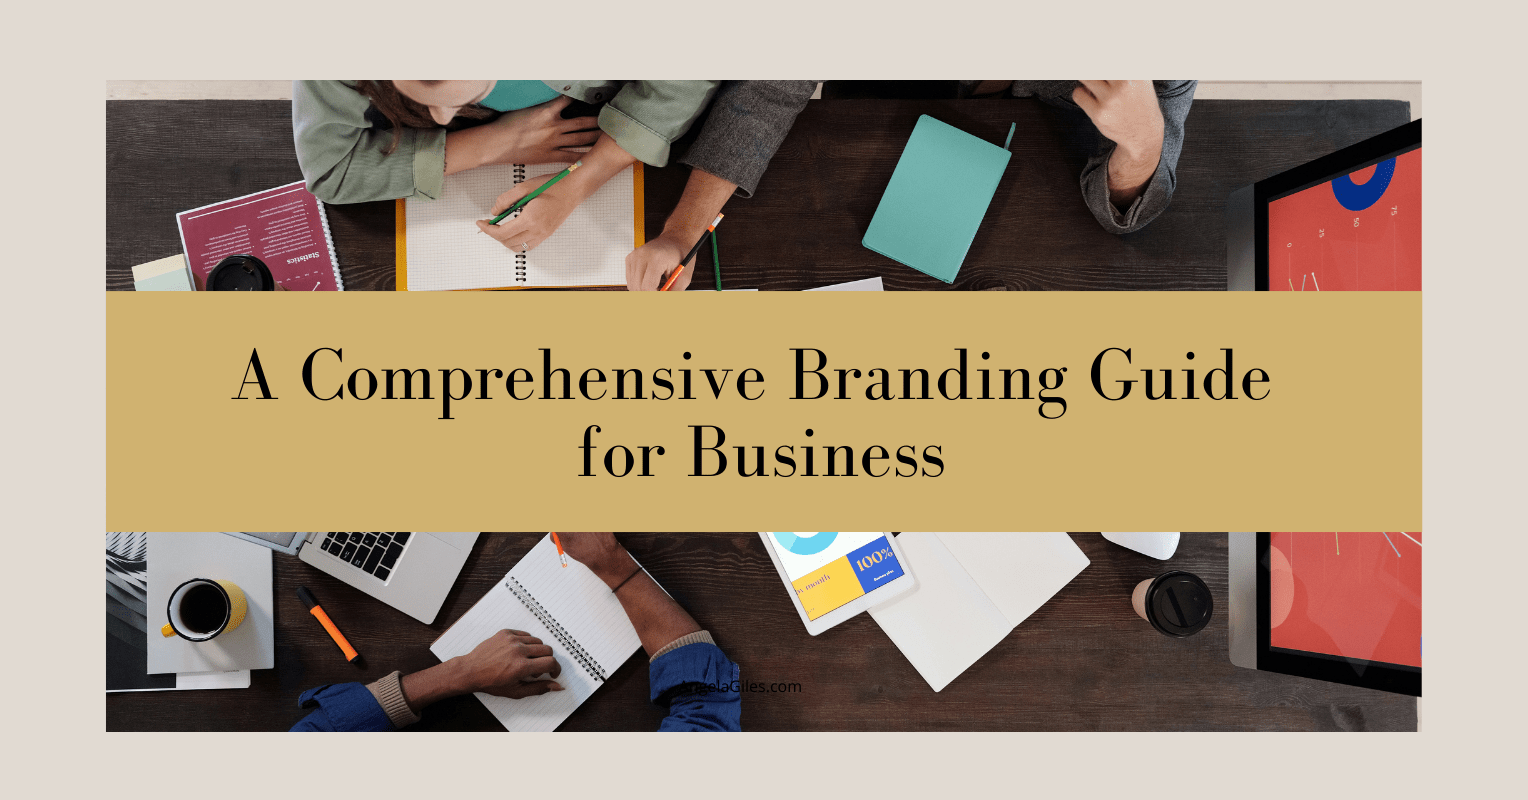 A Comprehensive Branding Guide for Business